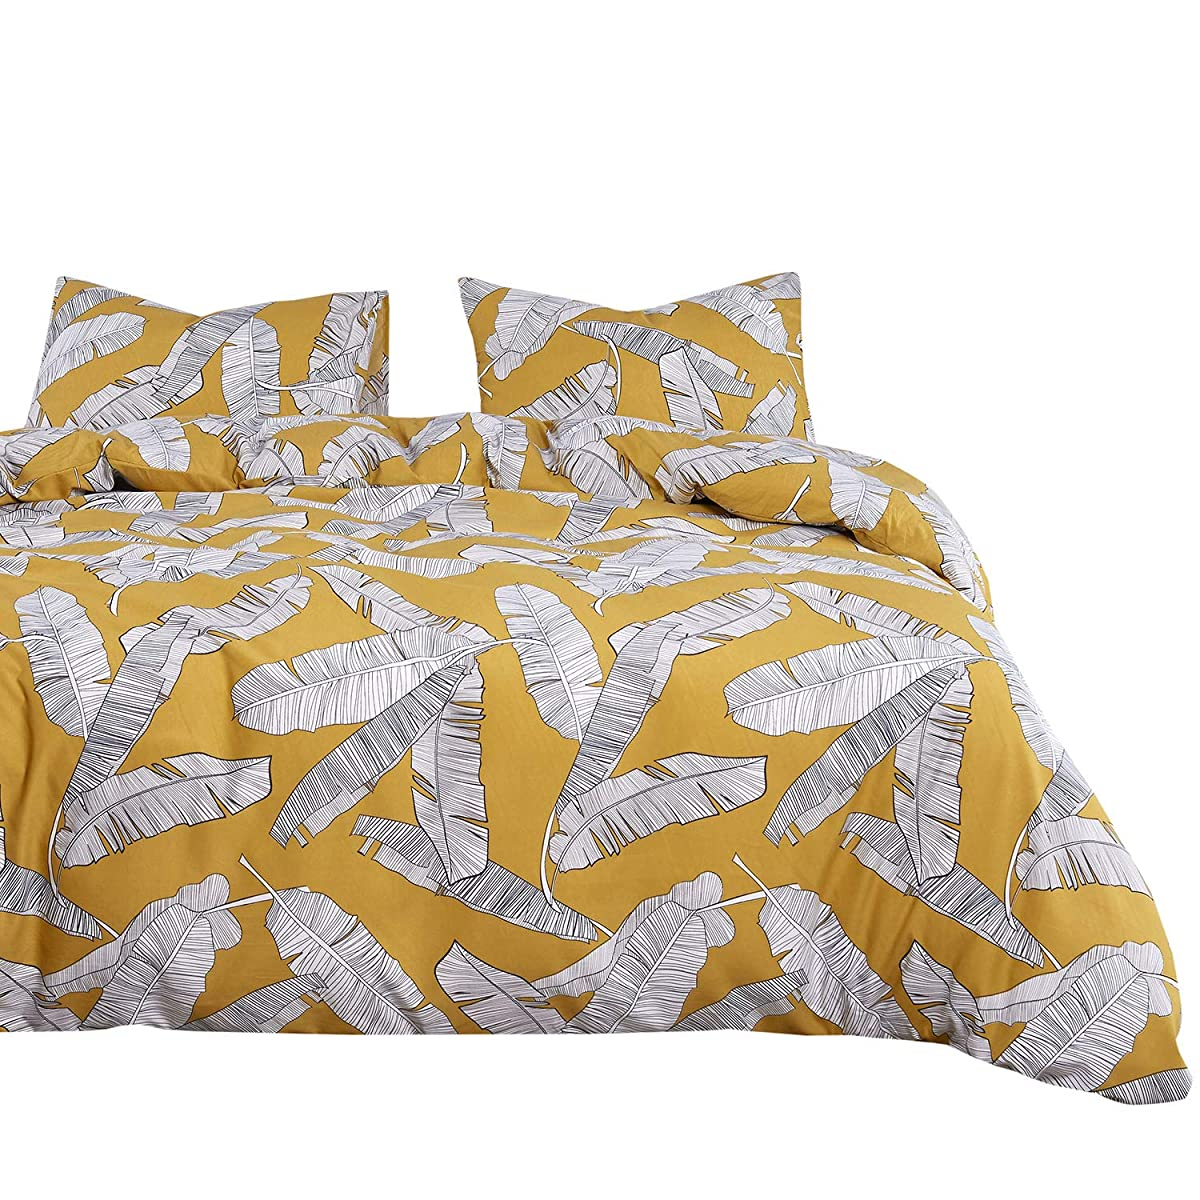 Wake In Cloud - Yellow Duvet Cover Set, Banana Tree Leaves Black White Drawing Pattern Printed, Soft Washed Microfiber Bedding Zipper Closure (3pcs, Twin Size)